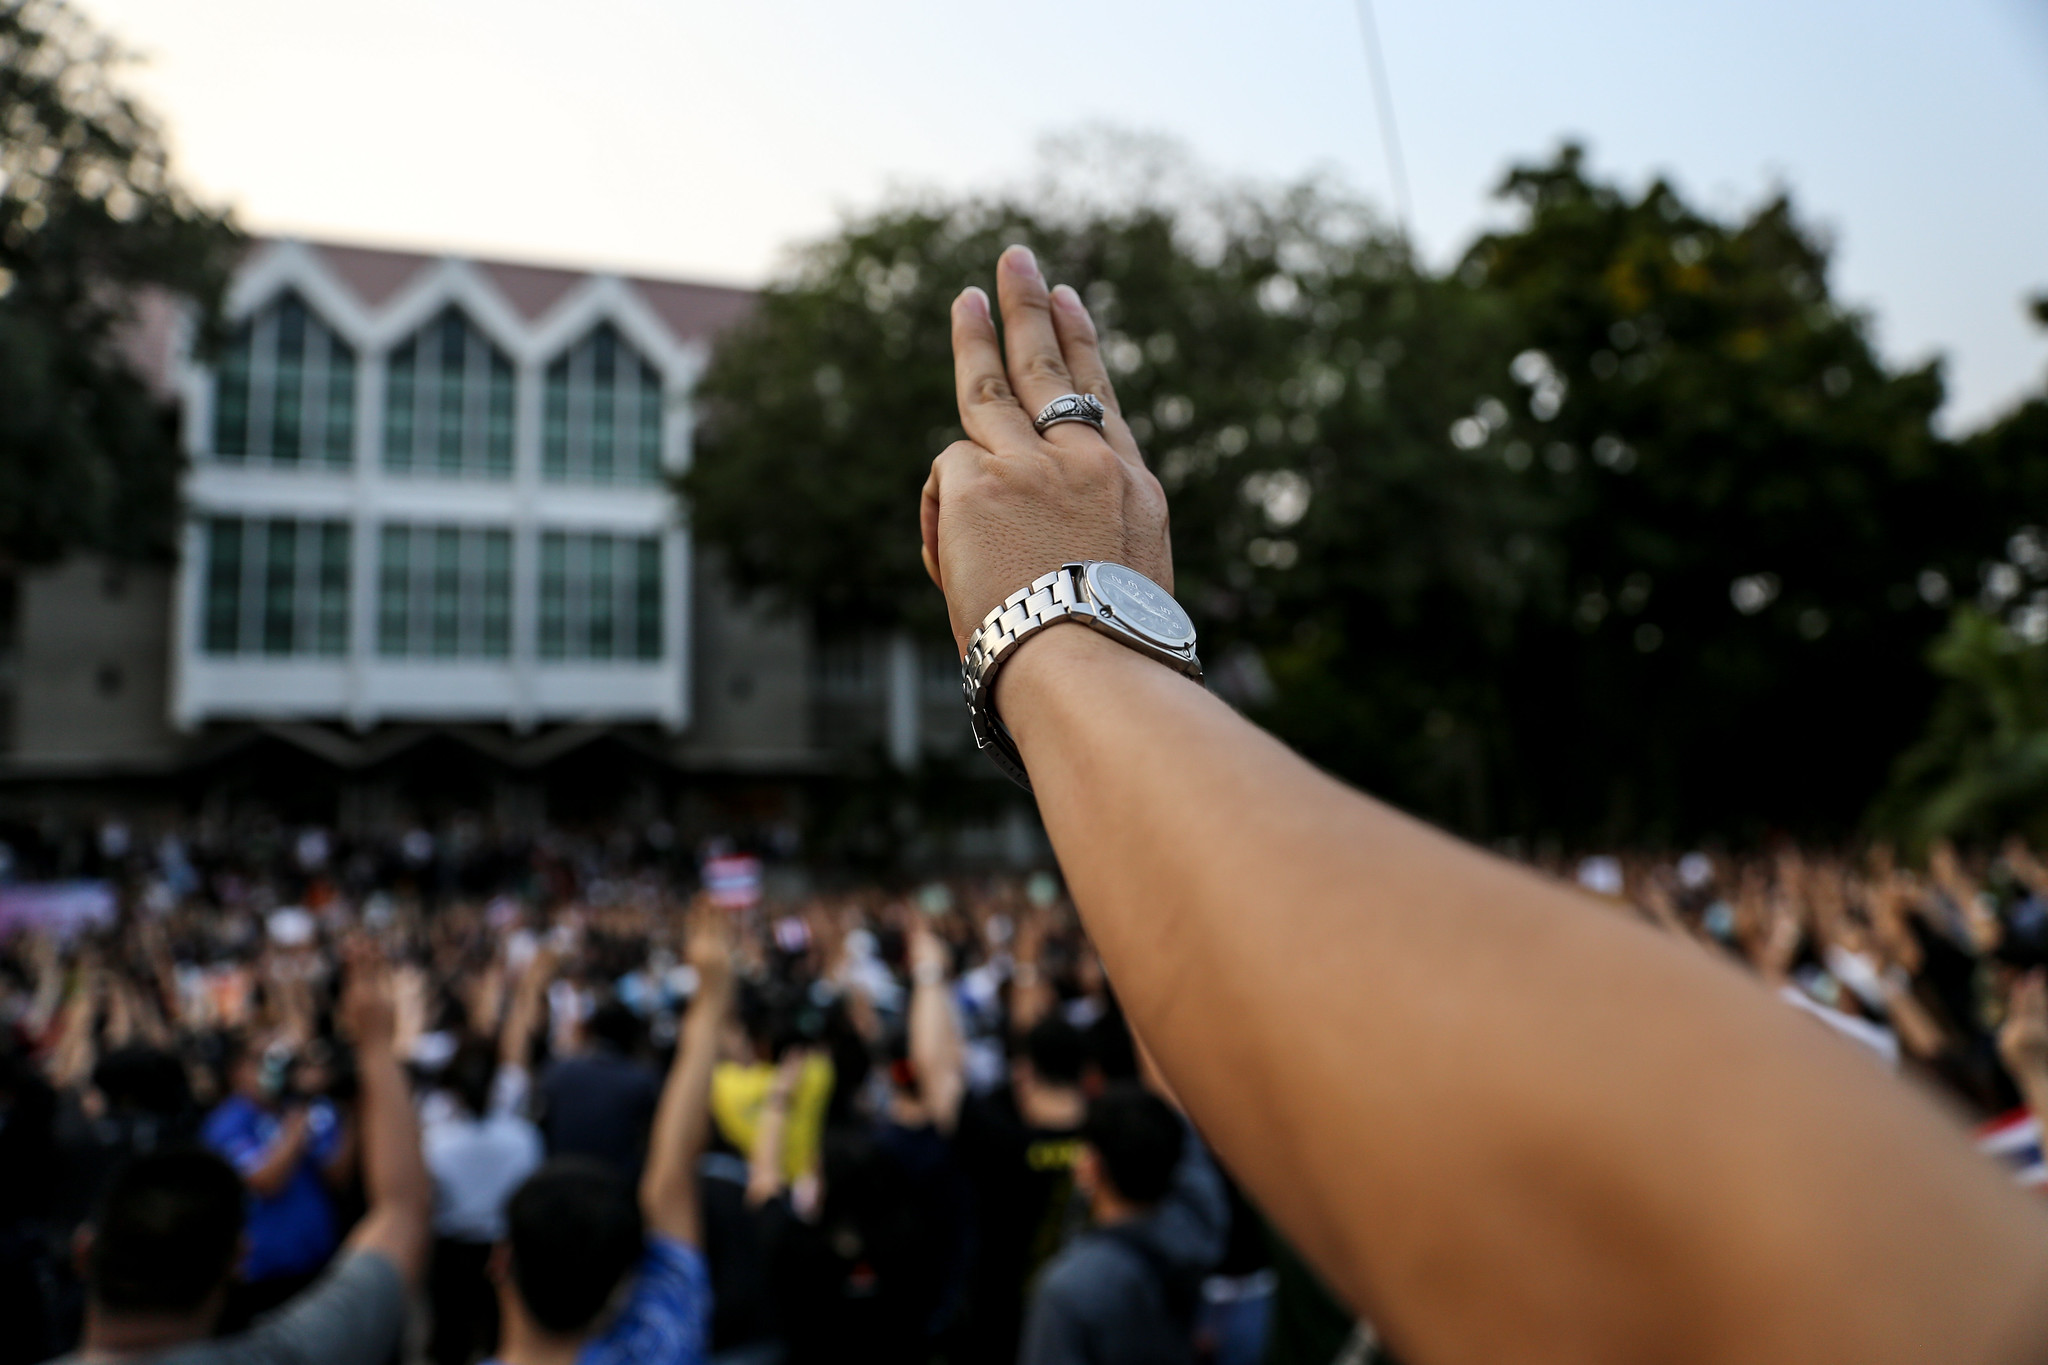 A picture of the demonstration at Kasetsart University. In the foreground is the hand of a protestor doing the three-finger salute. The crowd is seen in the background with many also doing the three-finger salute.